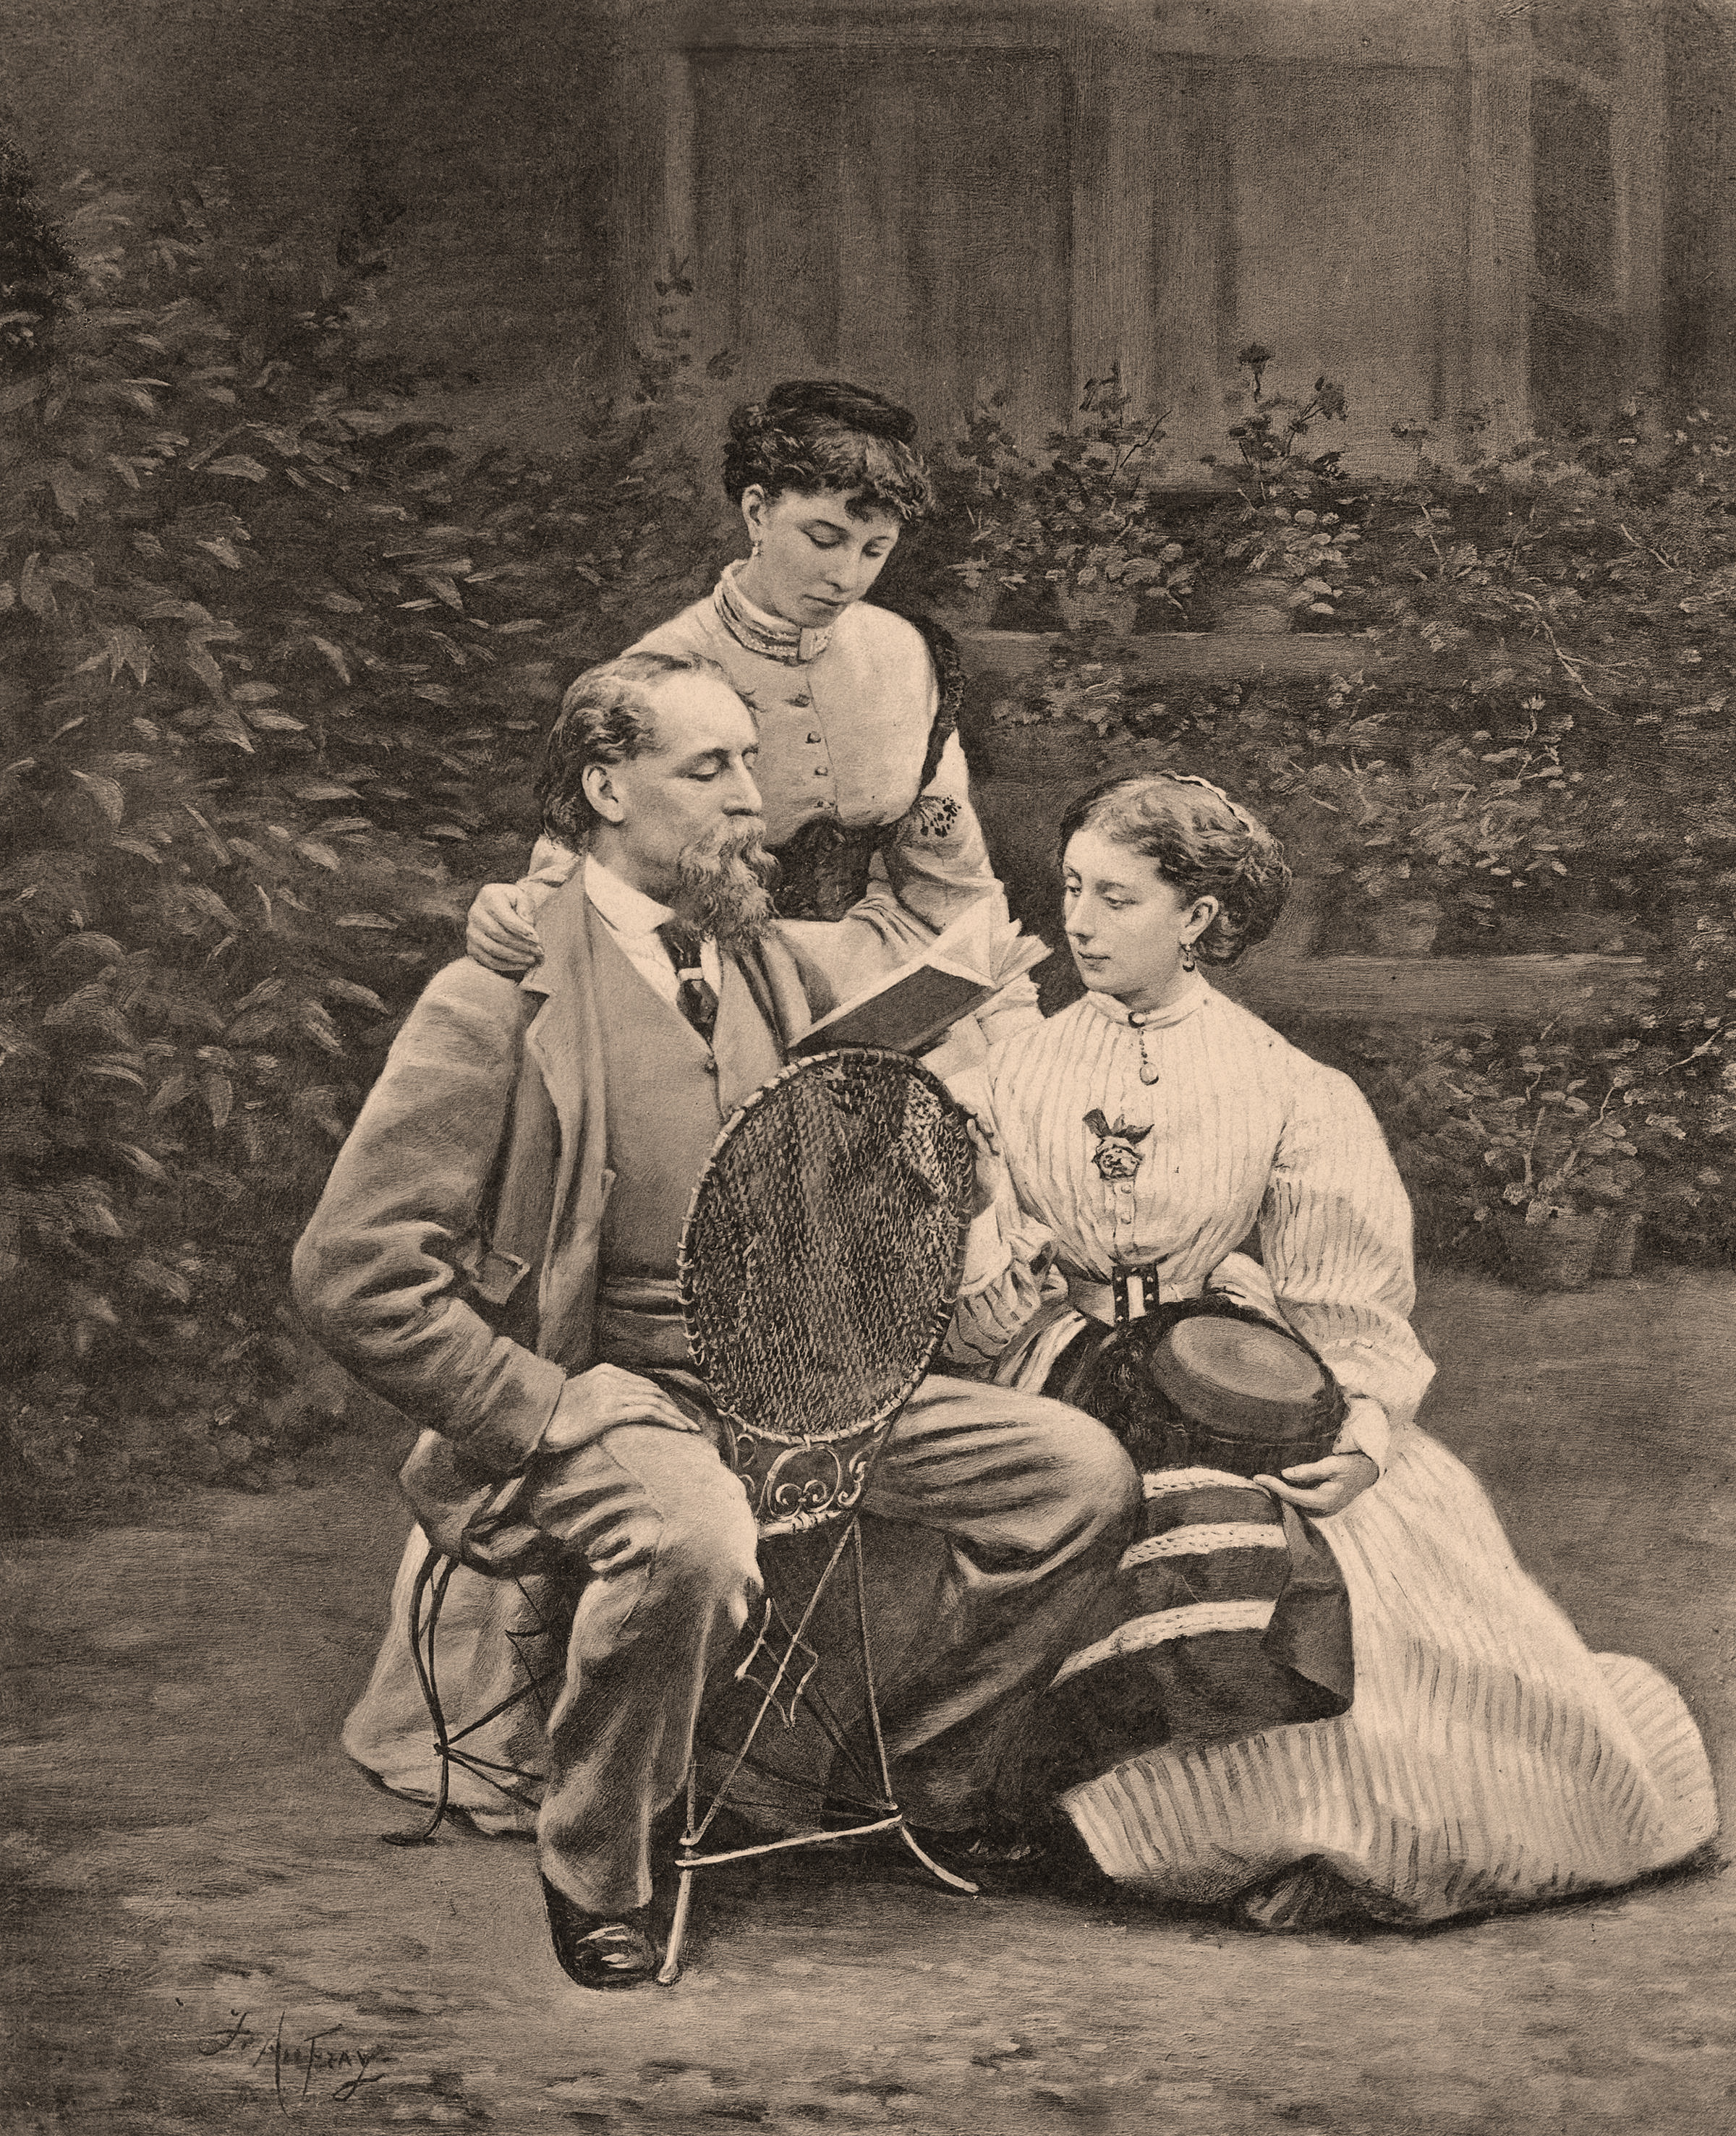 https://upload.wikimedia.org/wikipedia/commons/2/22/Charles_Dickens_with_his_two_daughters_by_Mason_%26_Co_%28Robert_Hindry_Mason%29.jpg